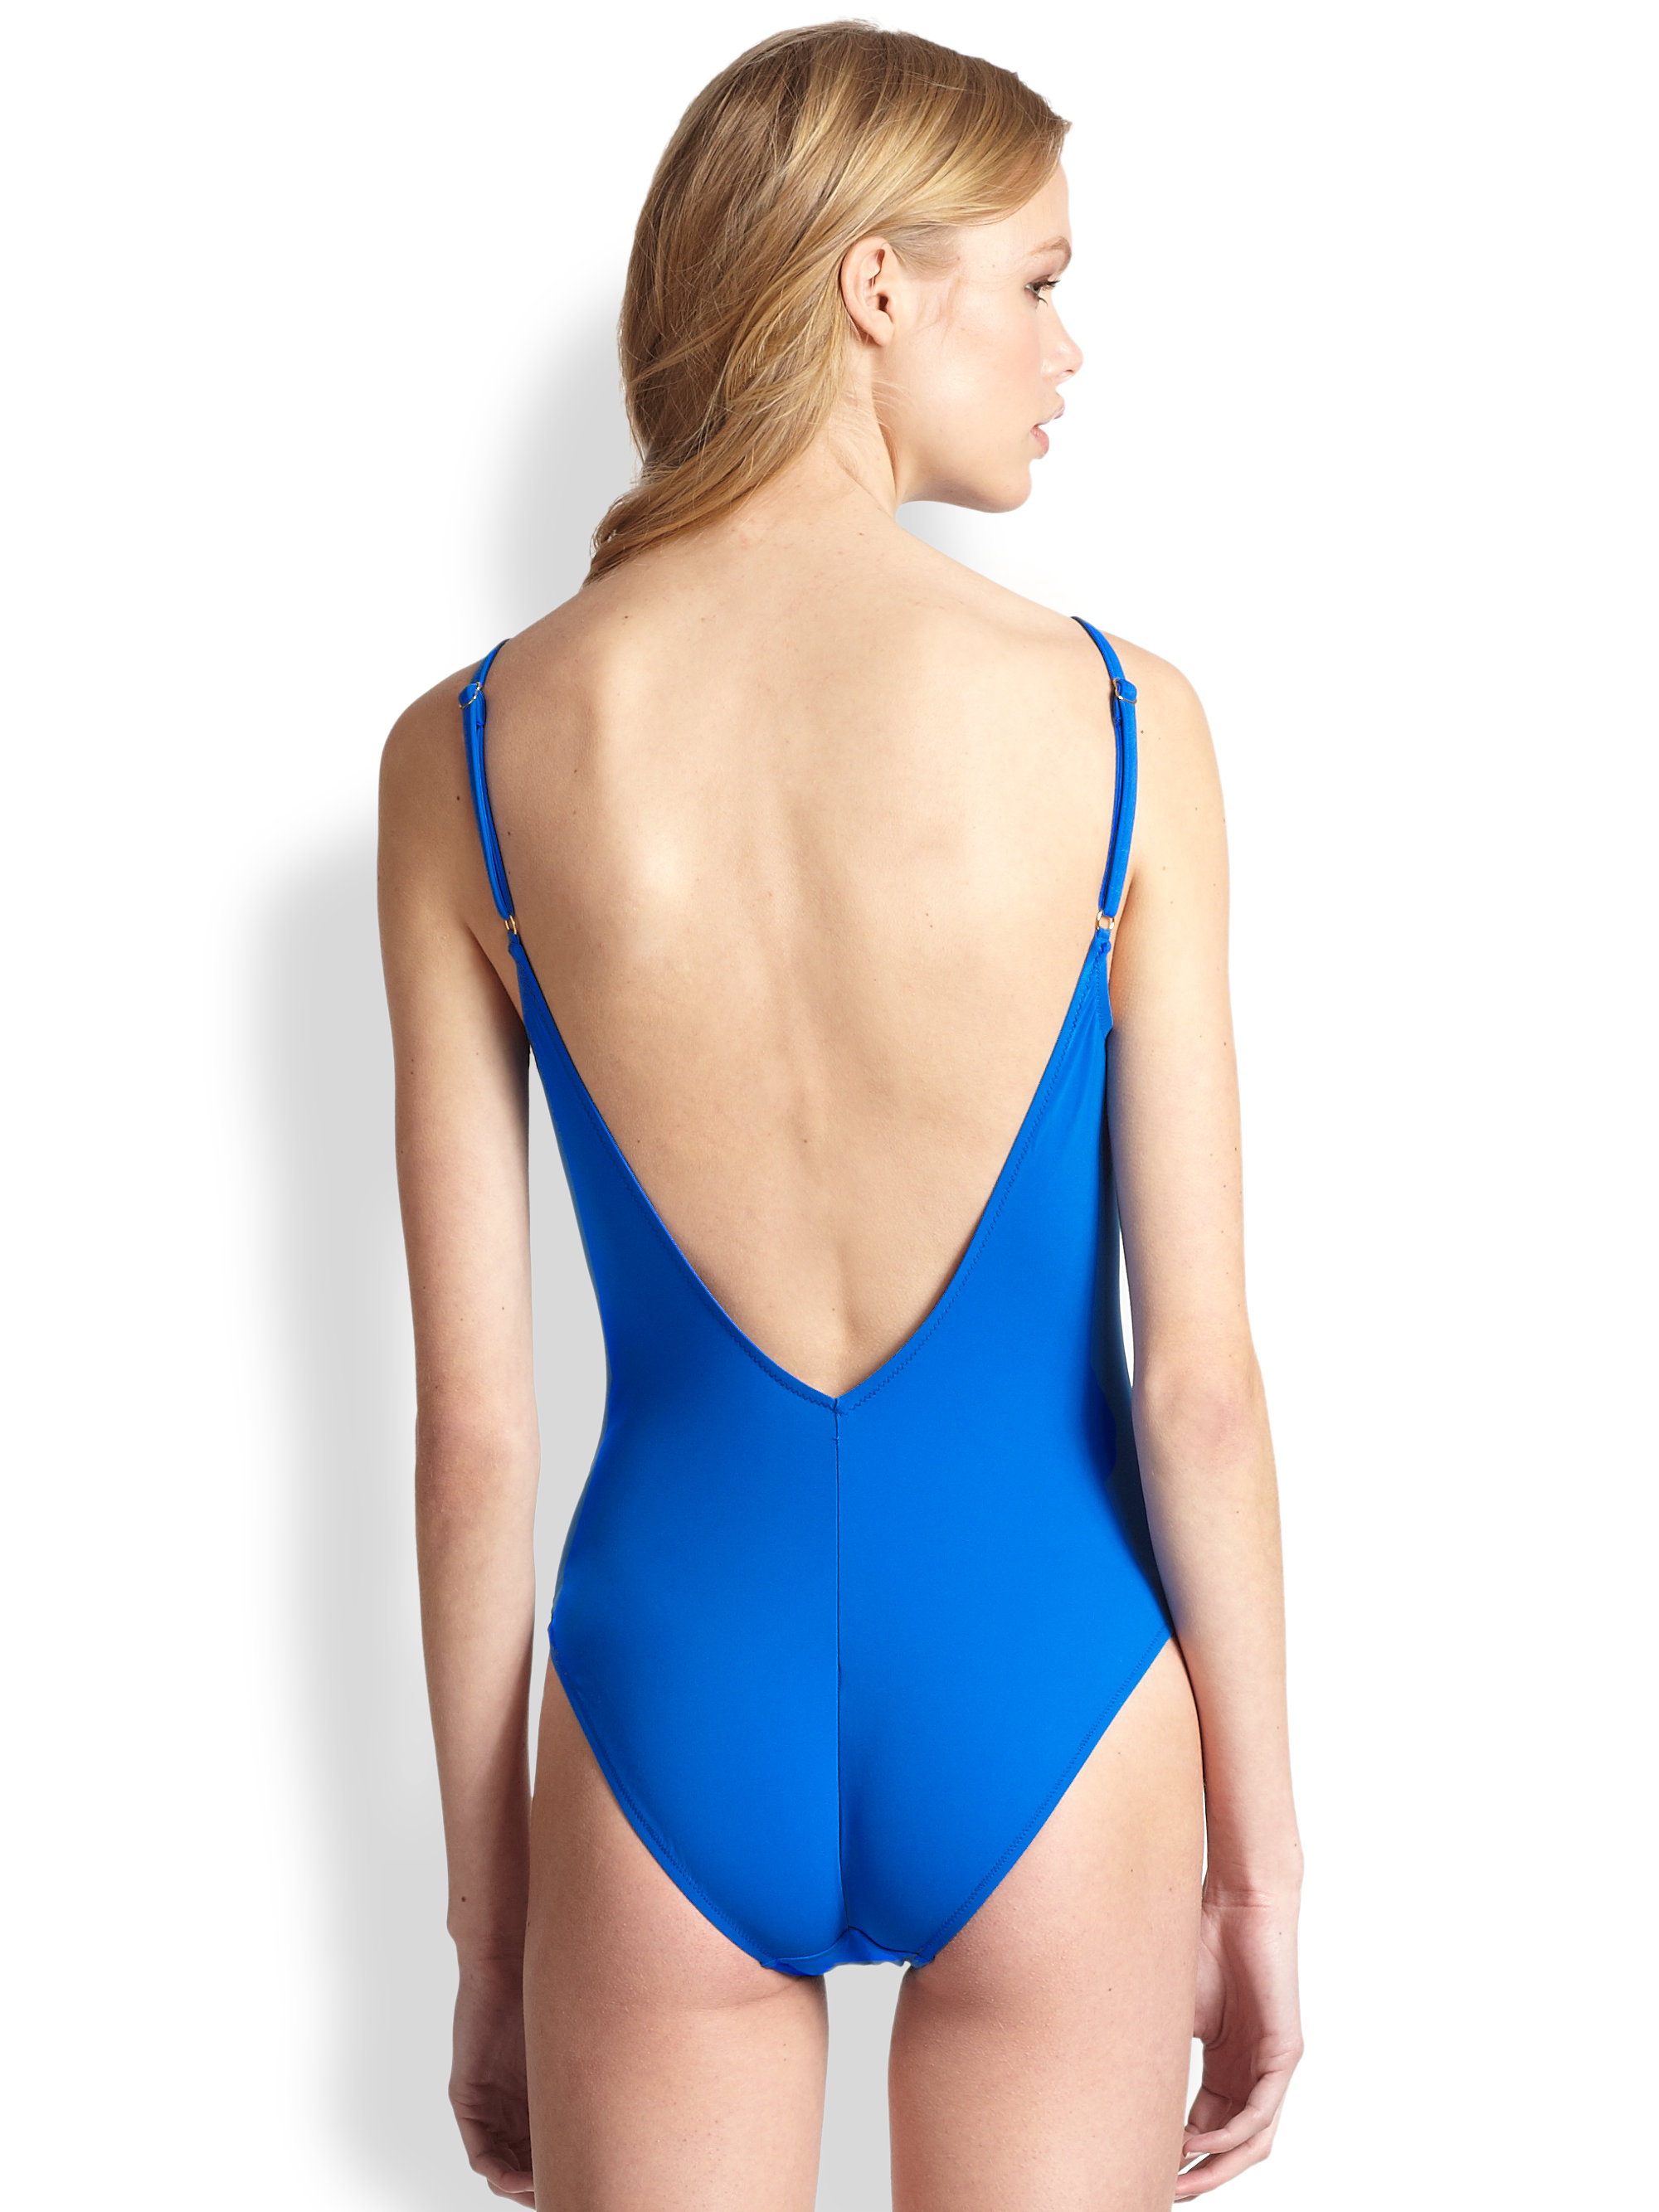 Gottex One-Piece Le Ribot V-Neck Swimsuit in Blue - Lyst